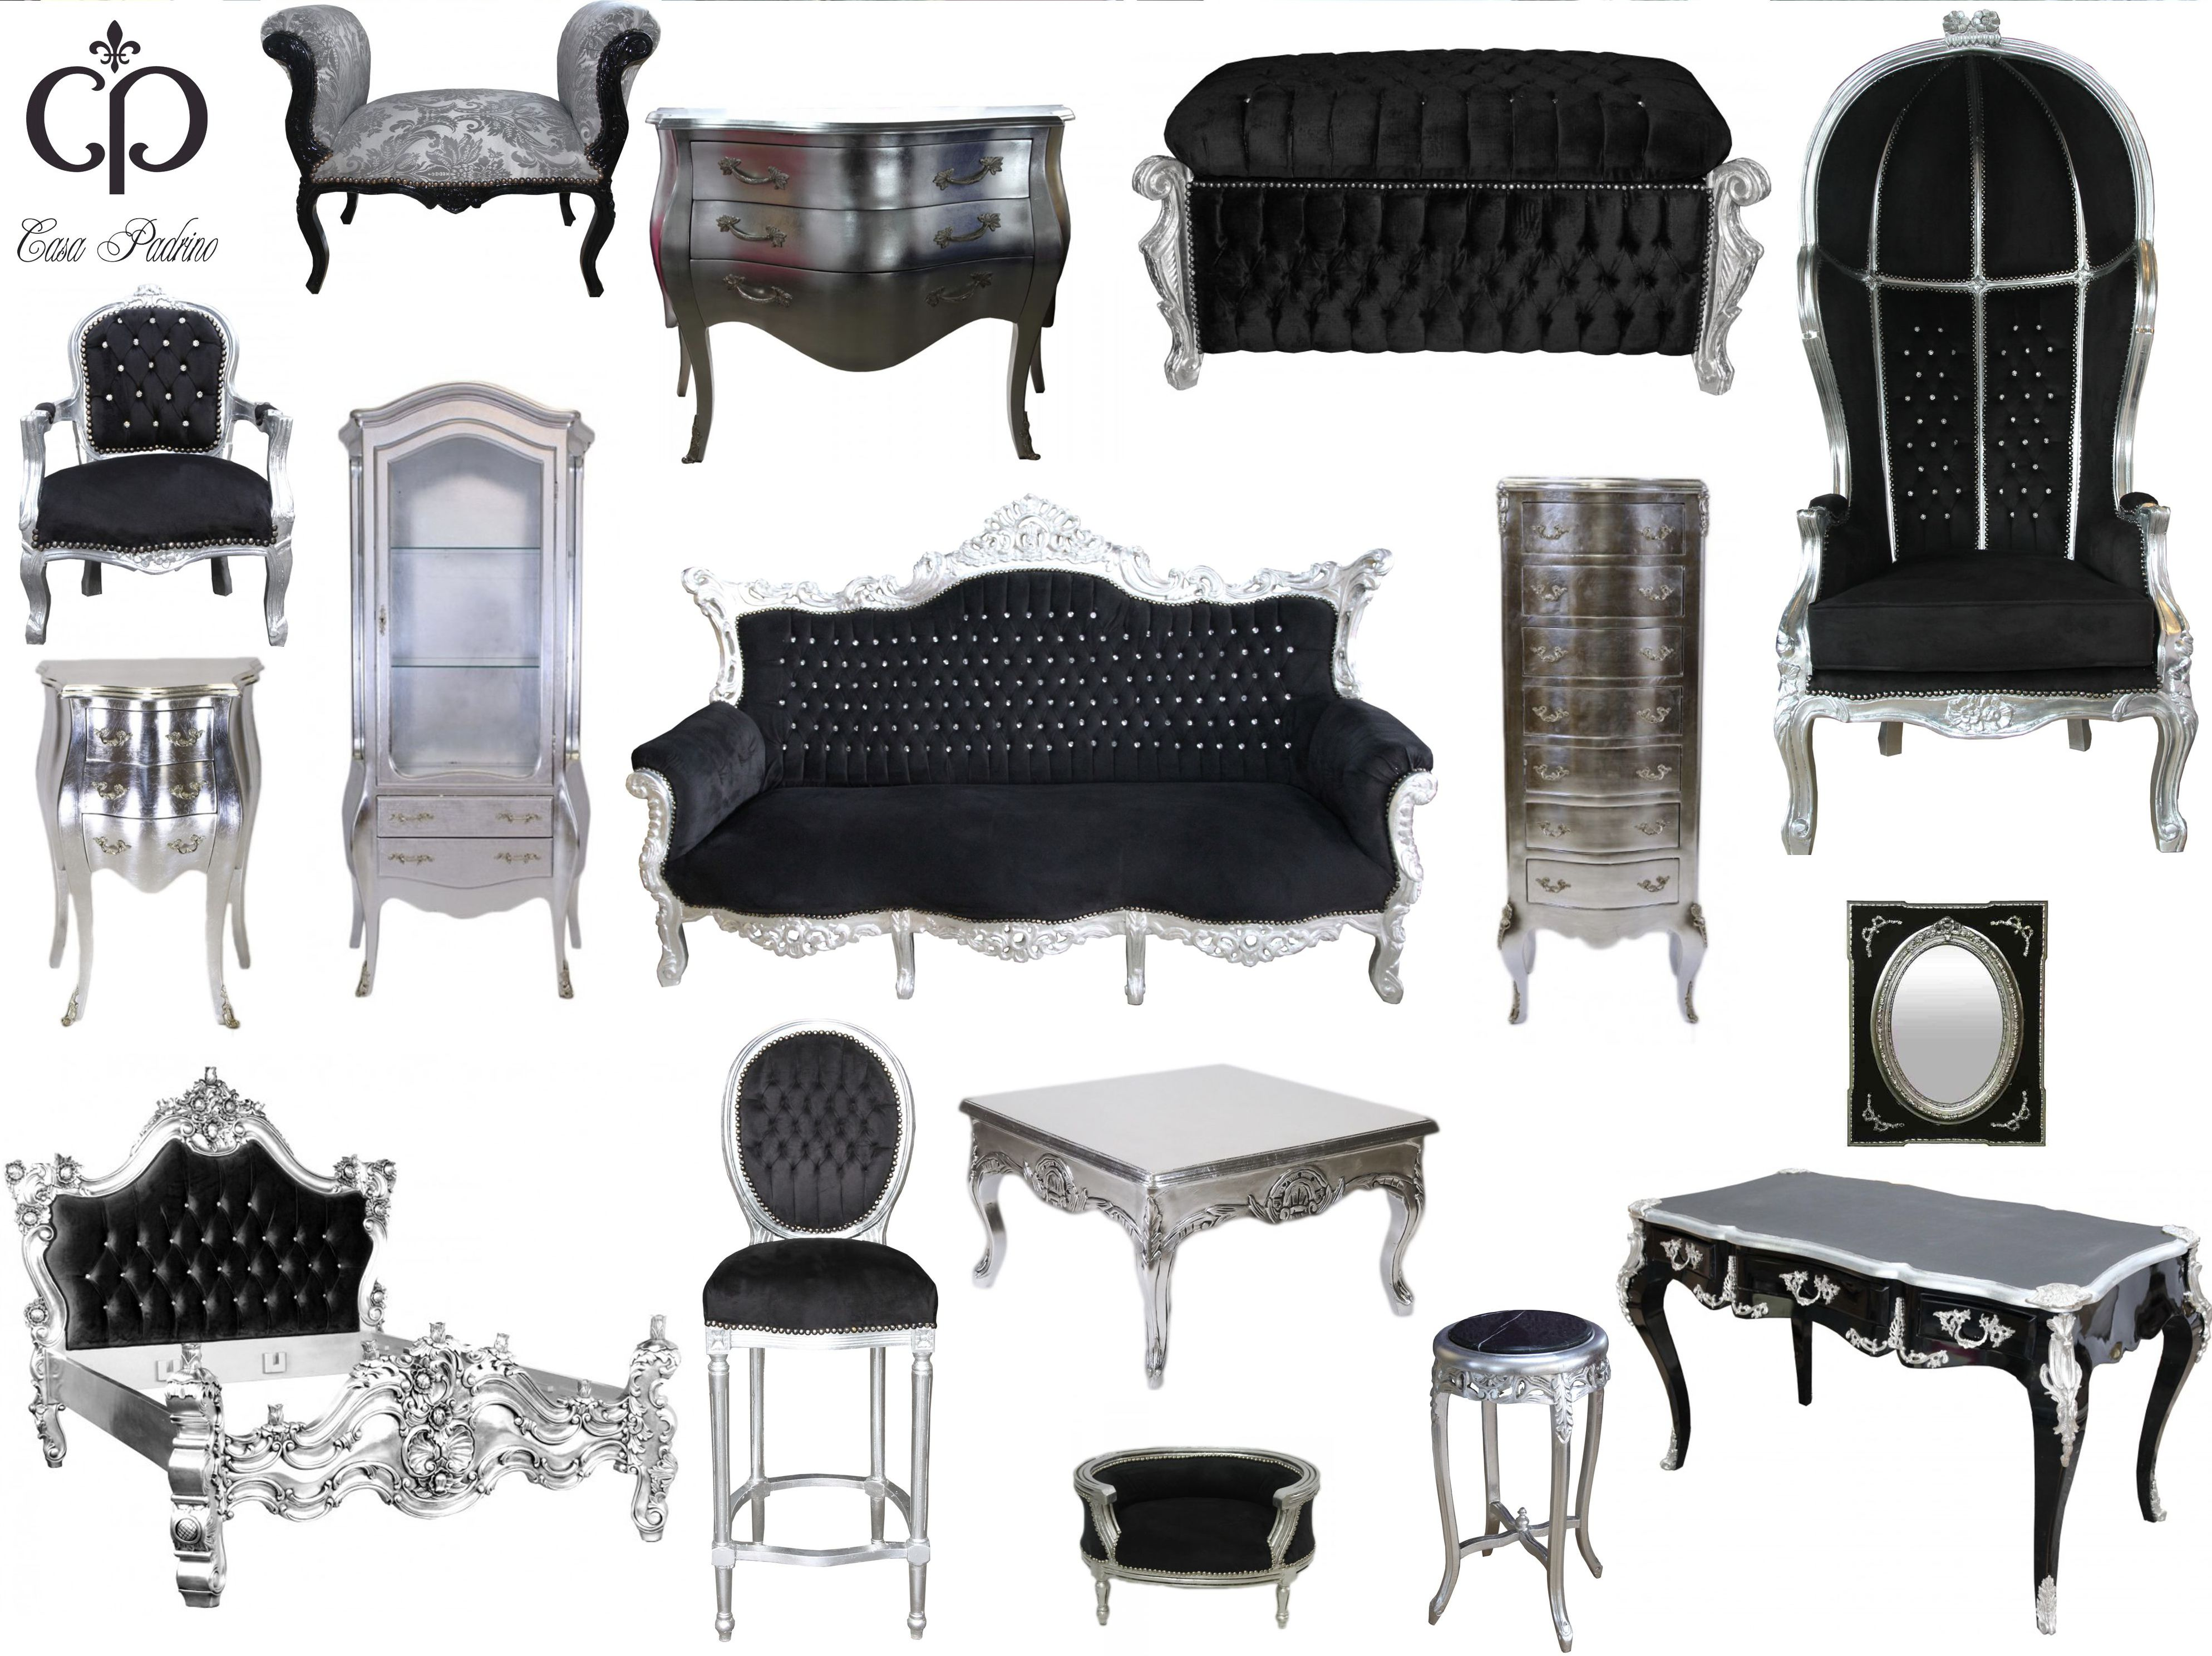 schwarz silber casa padrino barock m bel barockdesign. Black Bedroom Furniture Sets. Home Design Ideas